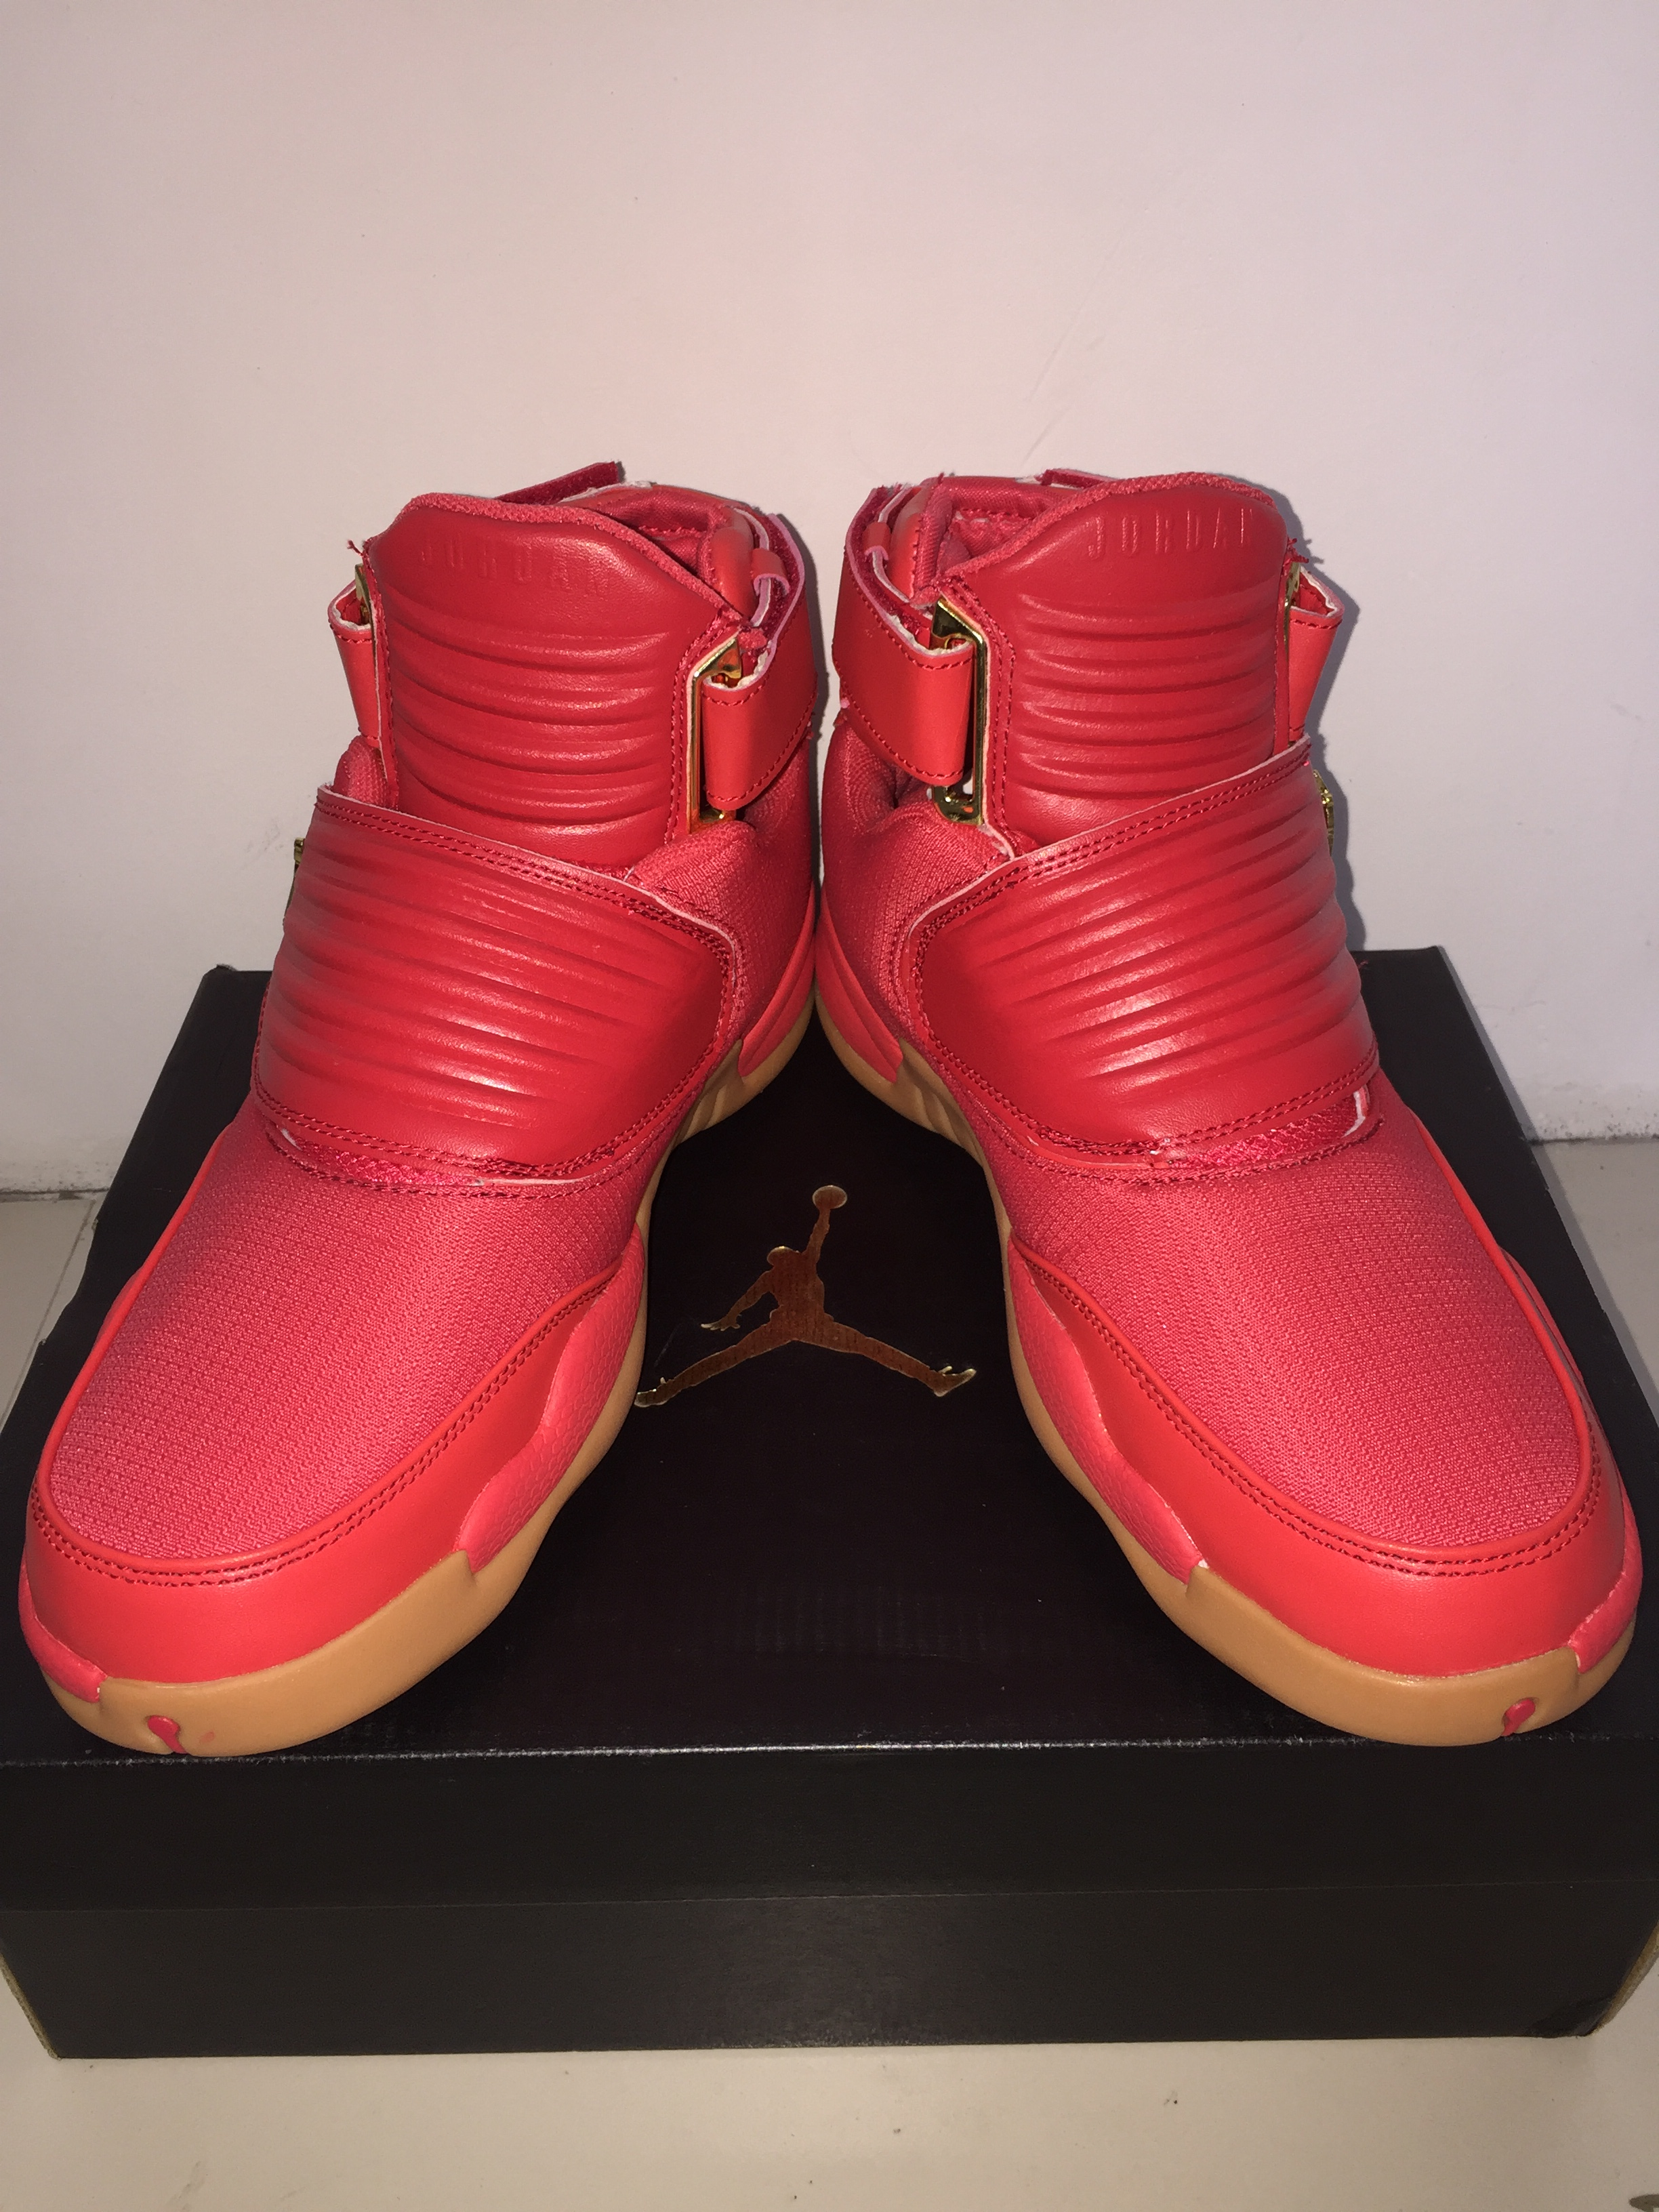 New Air Jordan Generation 23 Red Gum Sole Shoes